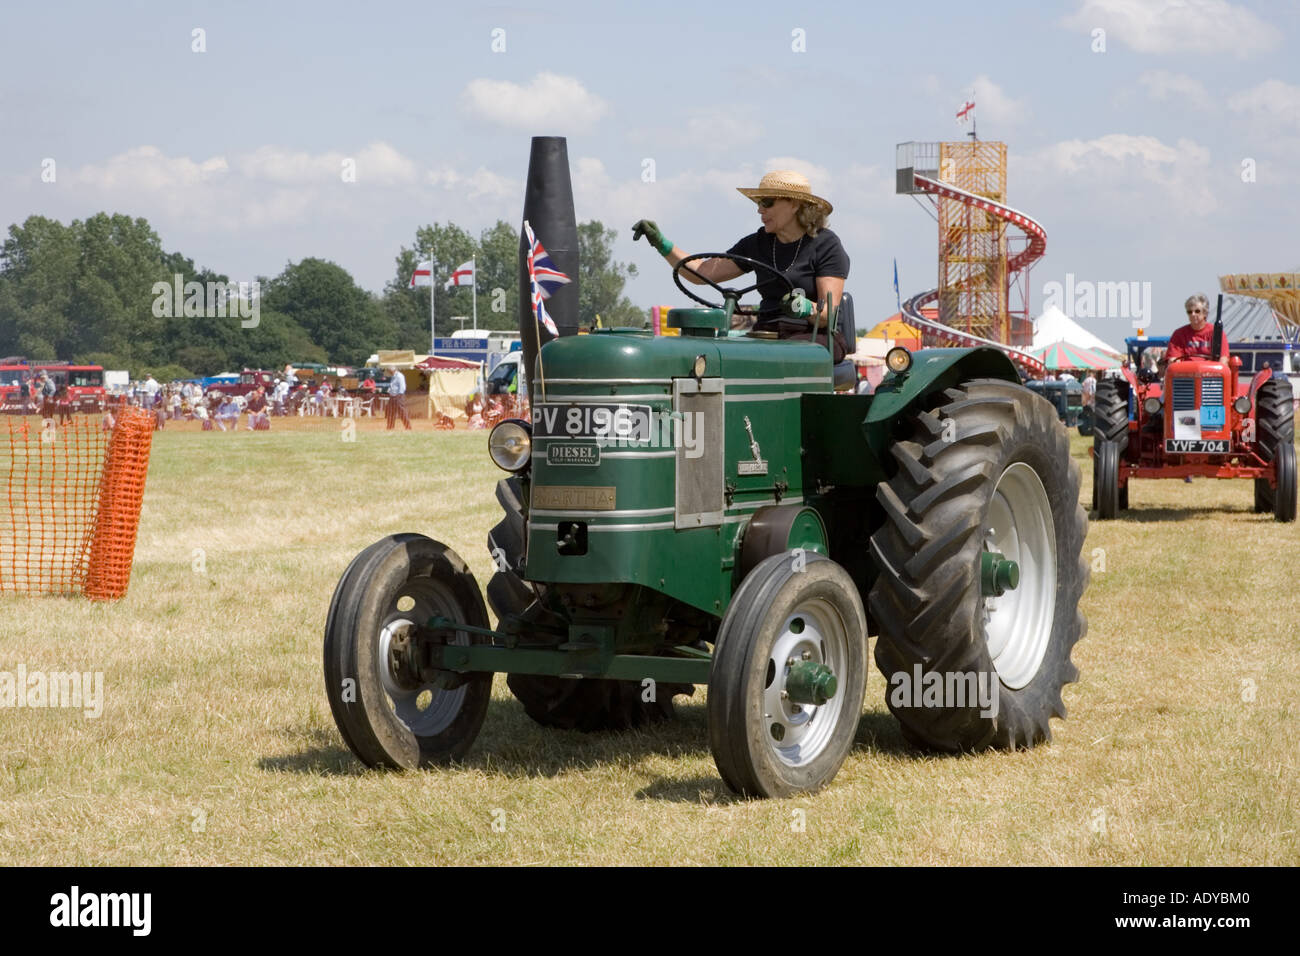 A Field Marshall tractor on display at Rougham Fair 2006 - Stock Image